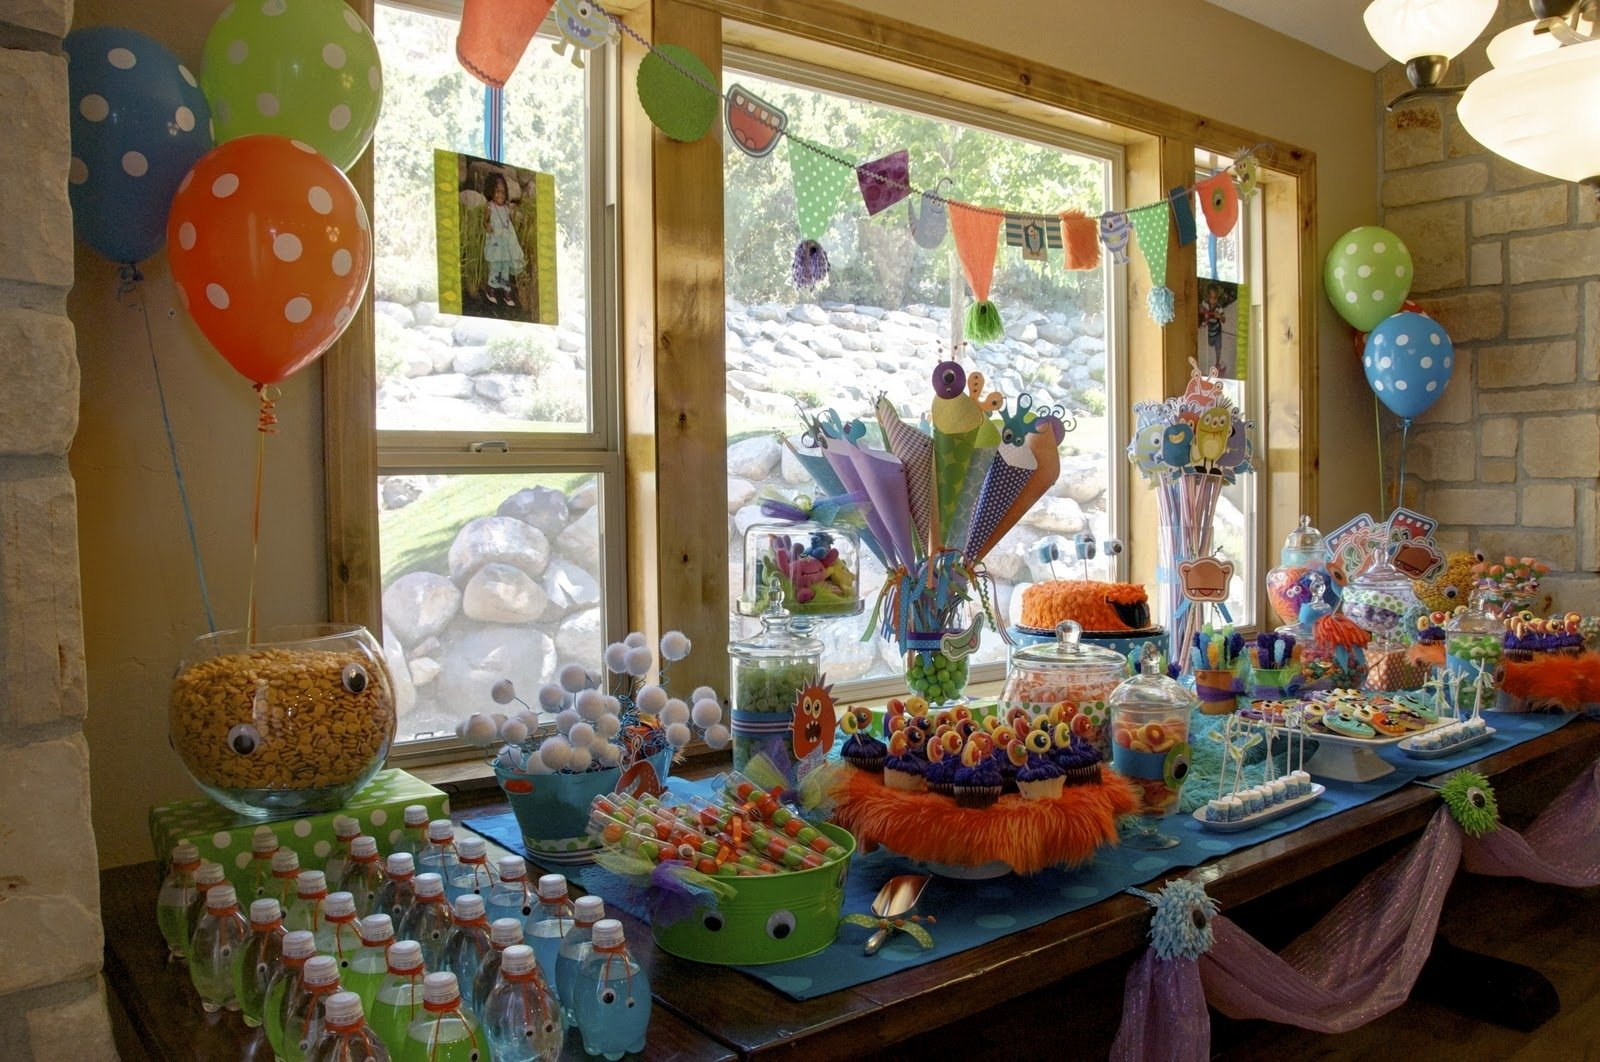 10 Great 2 Year Old Boy Birthday Party Ideas My Friends Is In The Winter